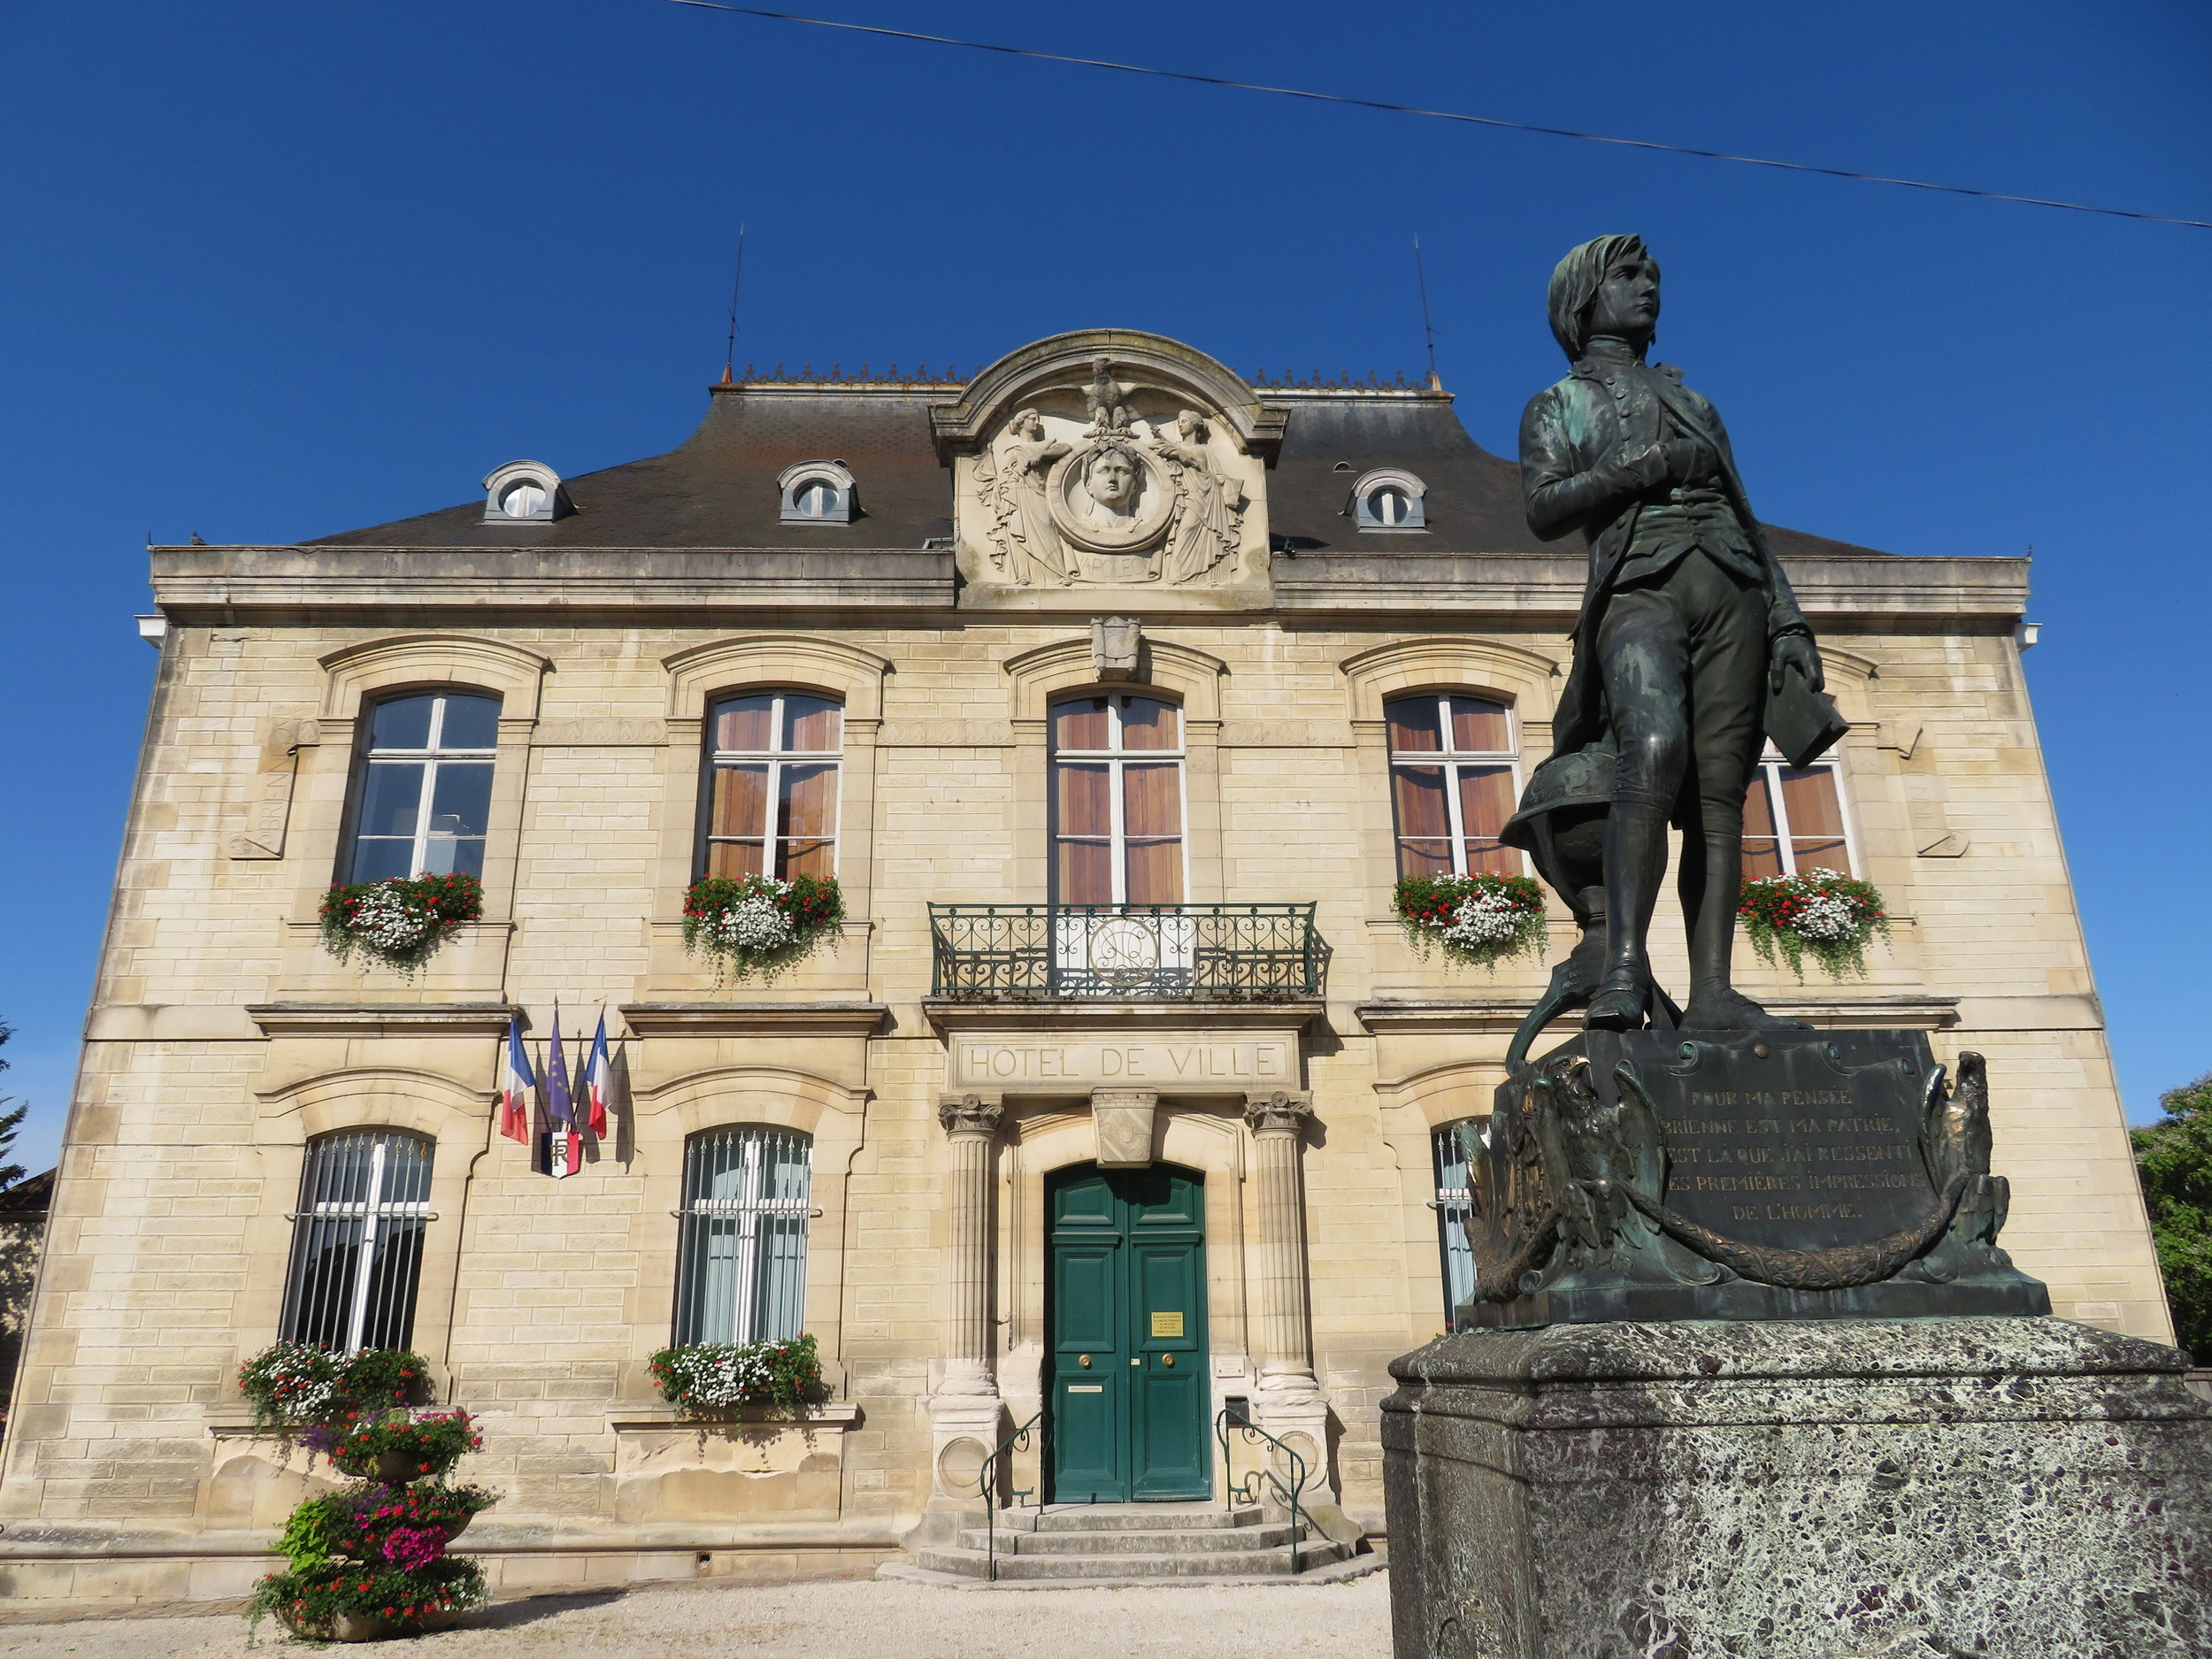 Brienne Mairie (town hall)